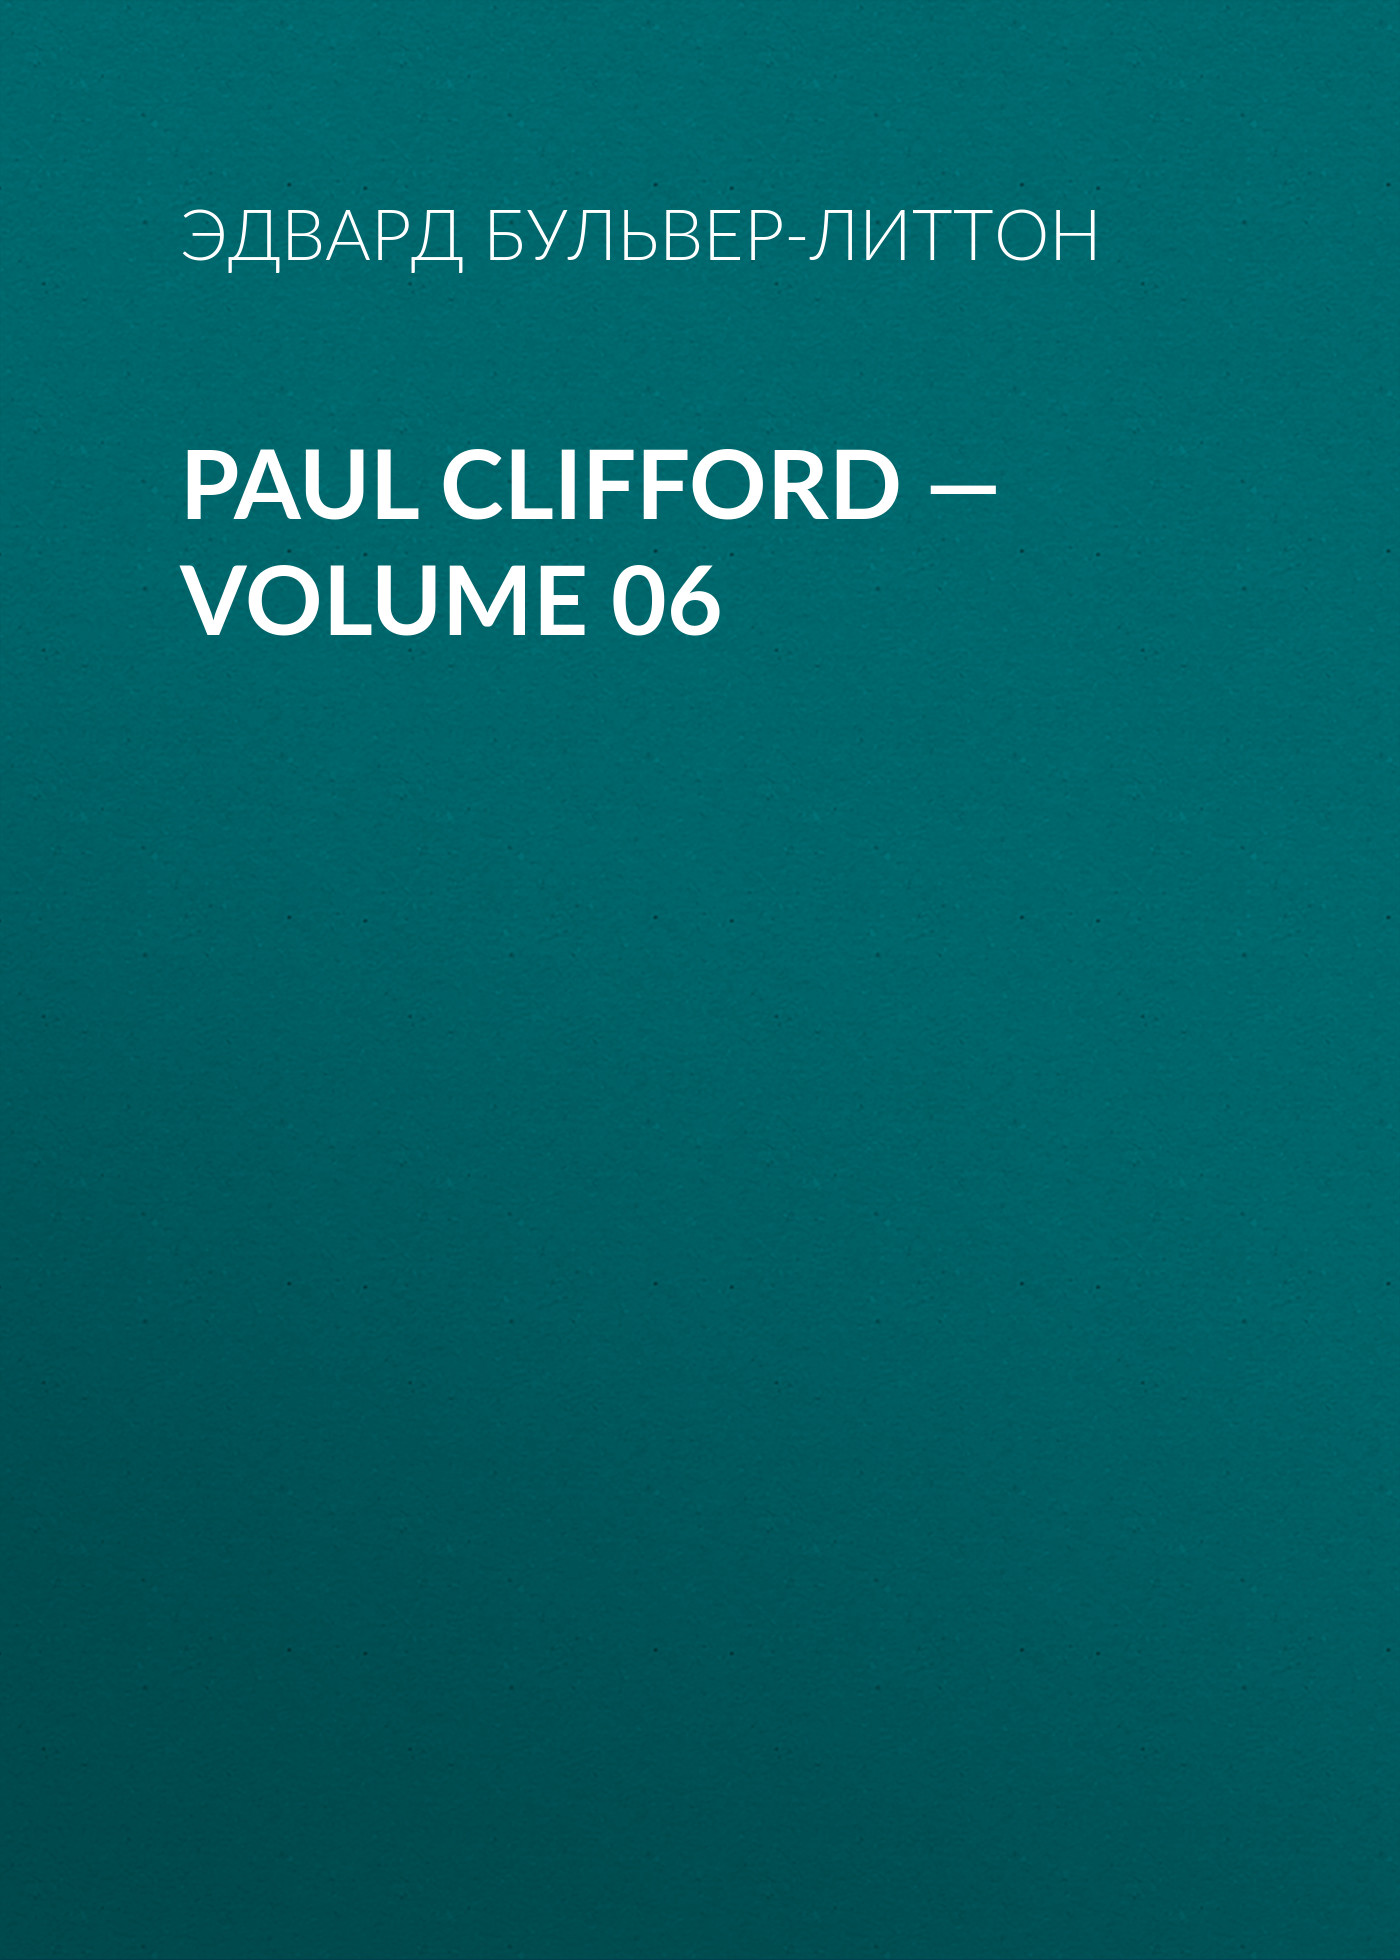 цены на Эдвард Бульвер-Литтон Paul Clifford — Volume 06  в интернет-магазинах